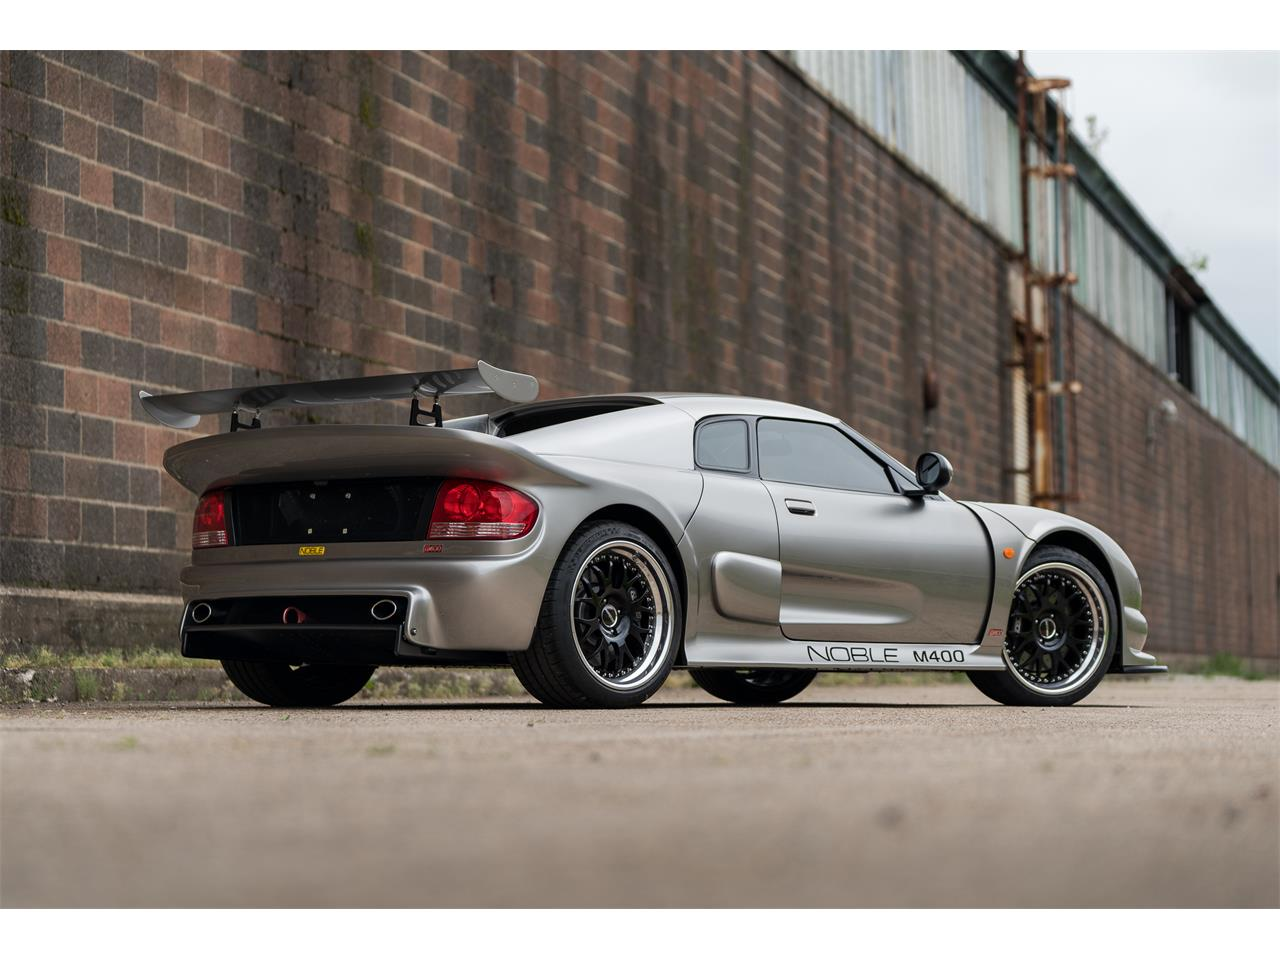 Large Picture of 2007 Noble M400 located in Pennsylvania - $75,000.00 Offered by LBI Limited - NS5S